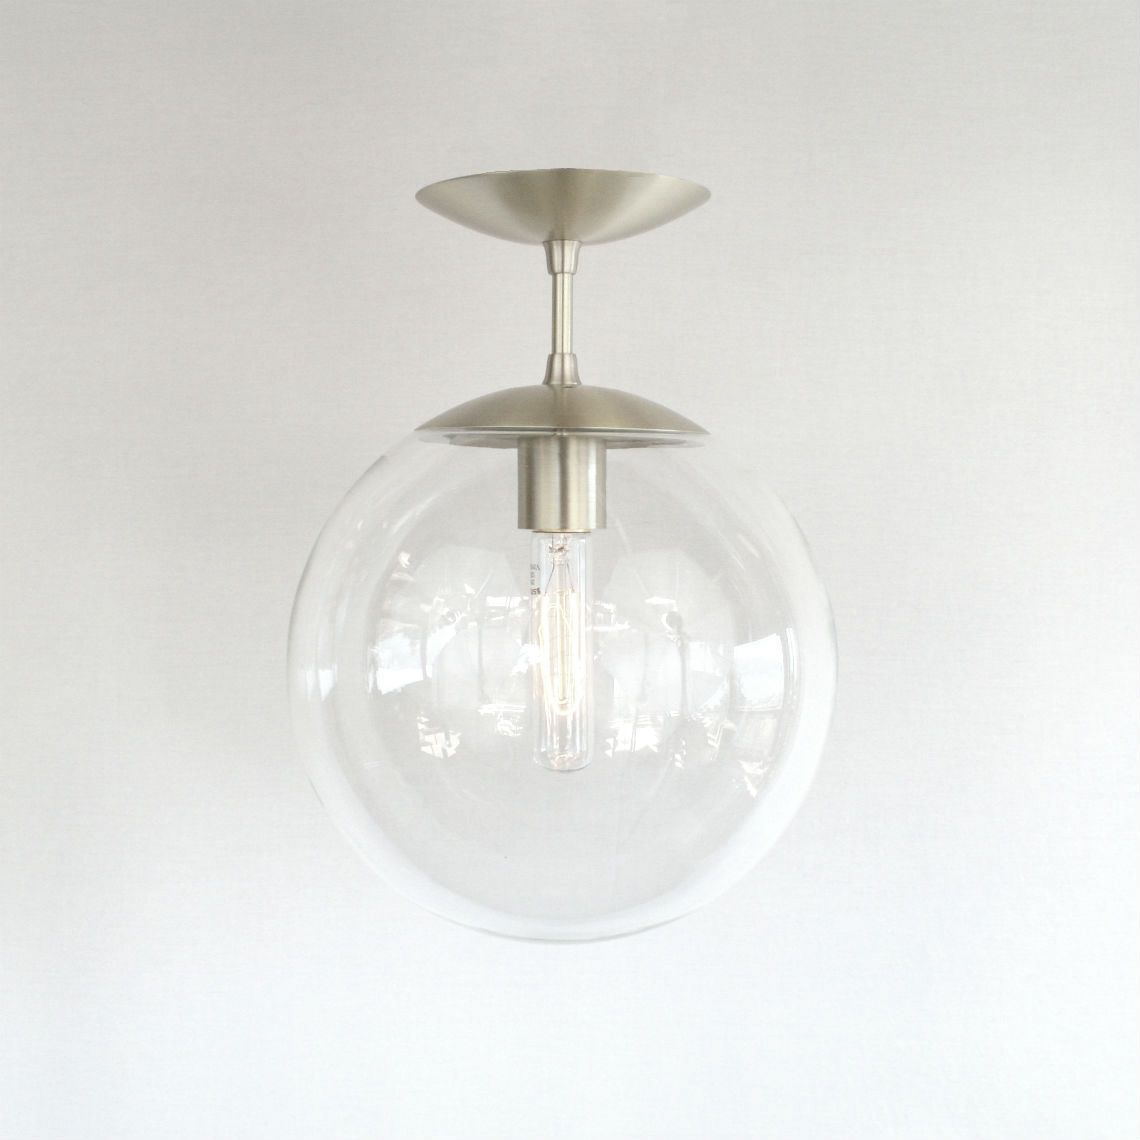 Orbiter 10 Semi Flush Pendant Light